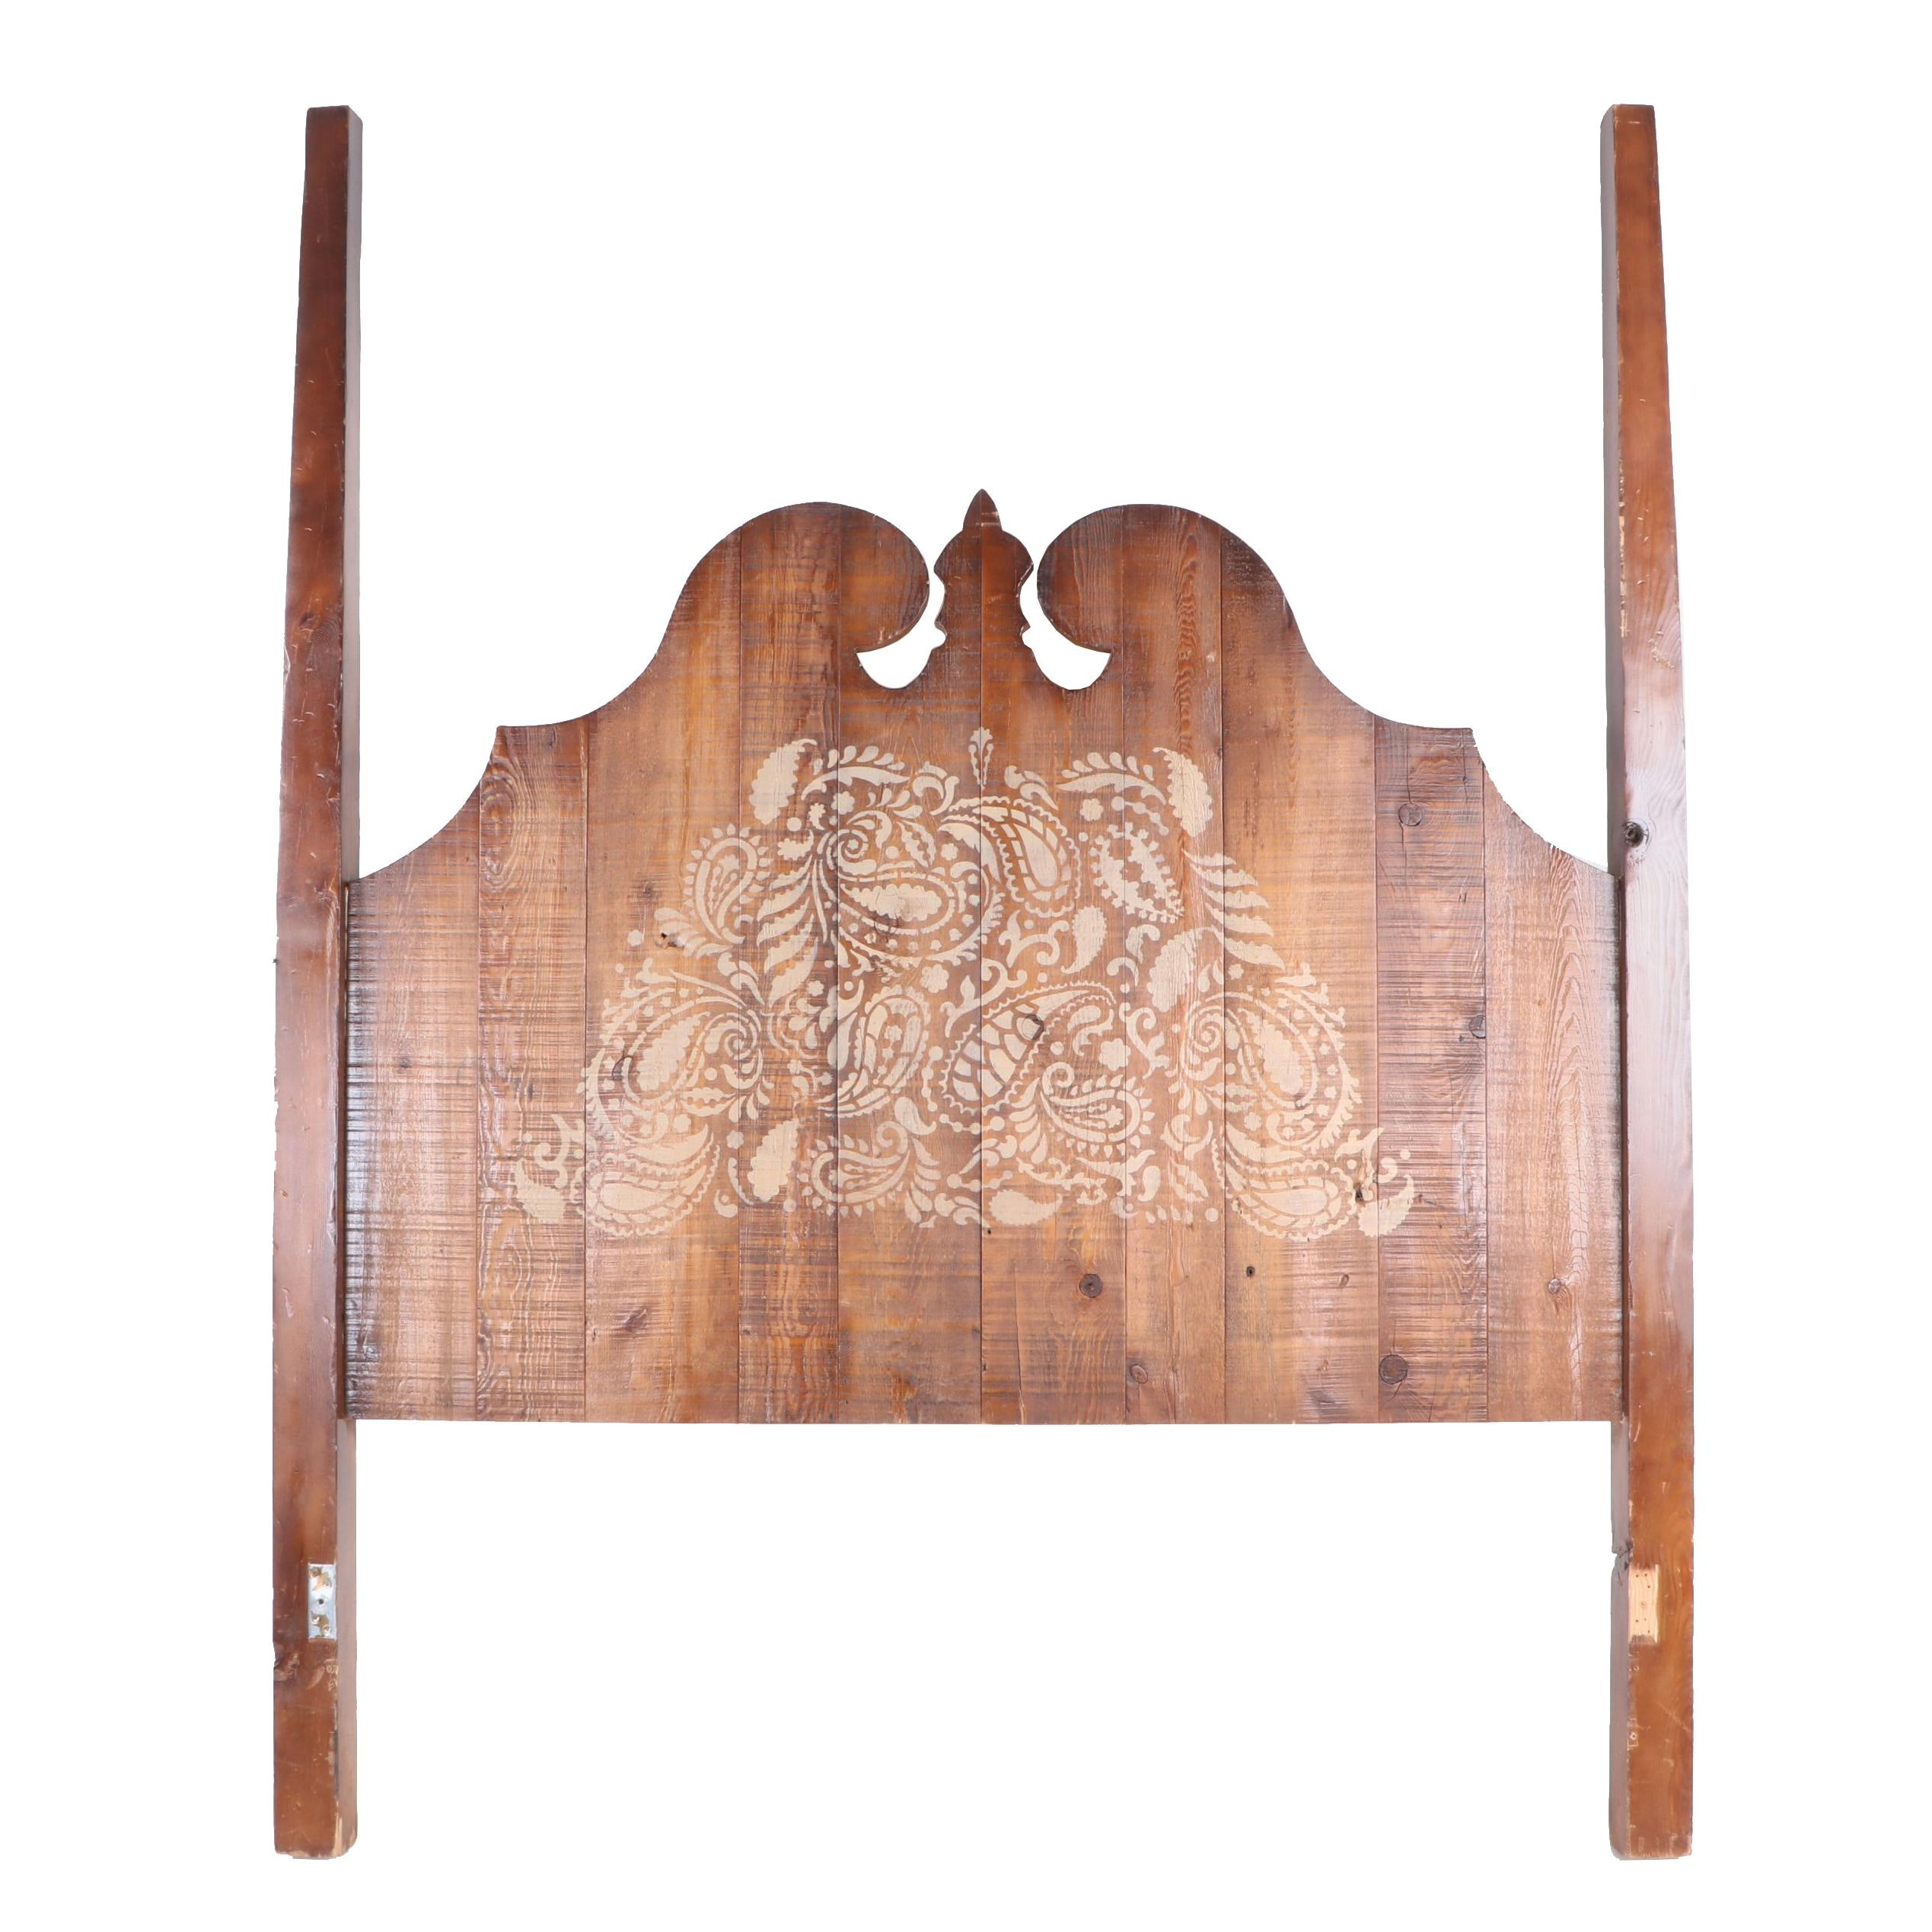 Queen Size Pine Headboard with Paisley Motif, Vintage